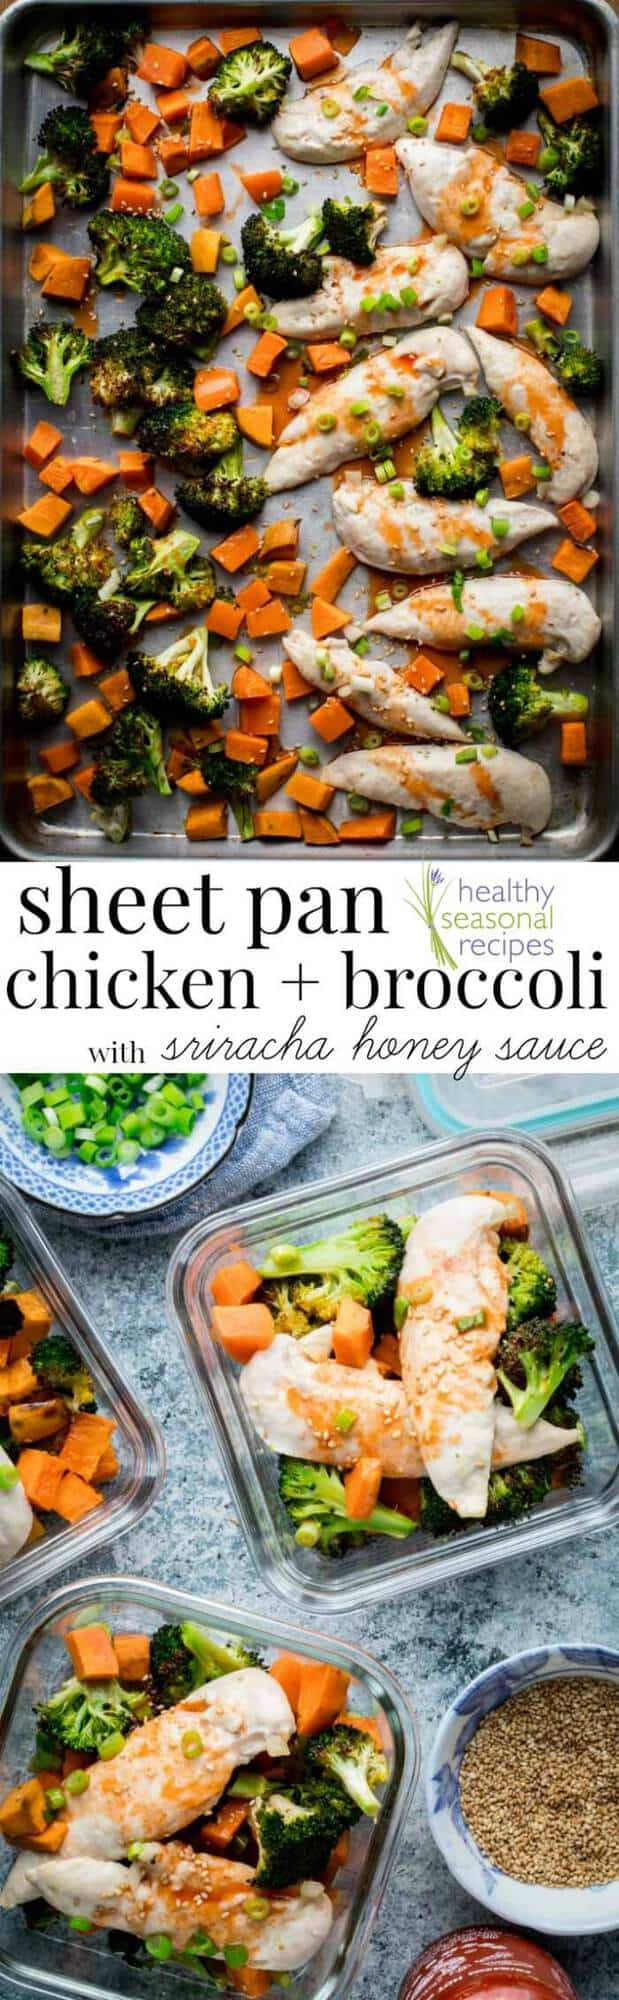 Oven Baked Sheet Pan Chicken and Broccoli Supper with Honey Sriracha Sauce- an easy meal prep friendly one pan dinner from Healthy Seasonal Recipes by Katie Webster #veggies #chicken #ovenbaked #healthyrecipes #broccoli #dinner #mealprep #paleo #onepan #sesame